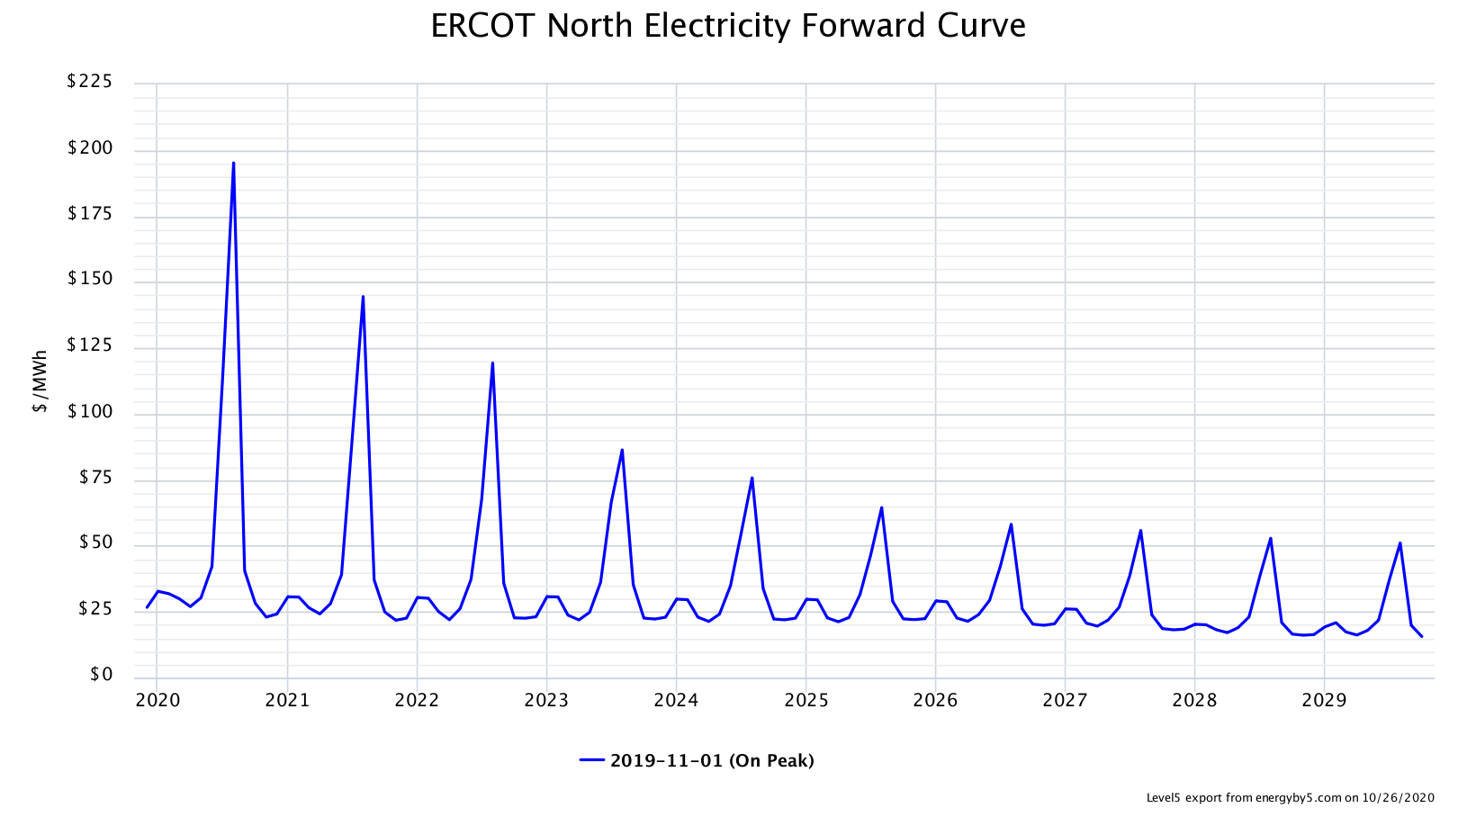 ERCOT North Electricity Forward Curve